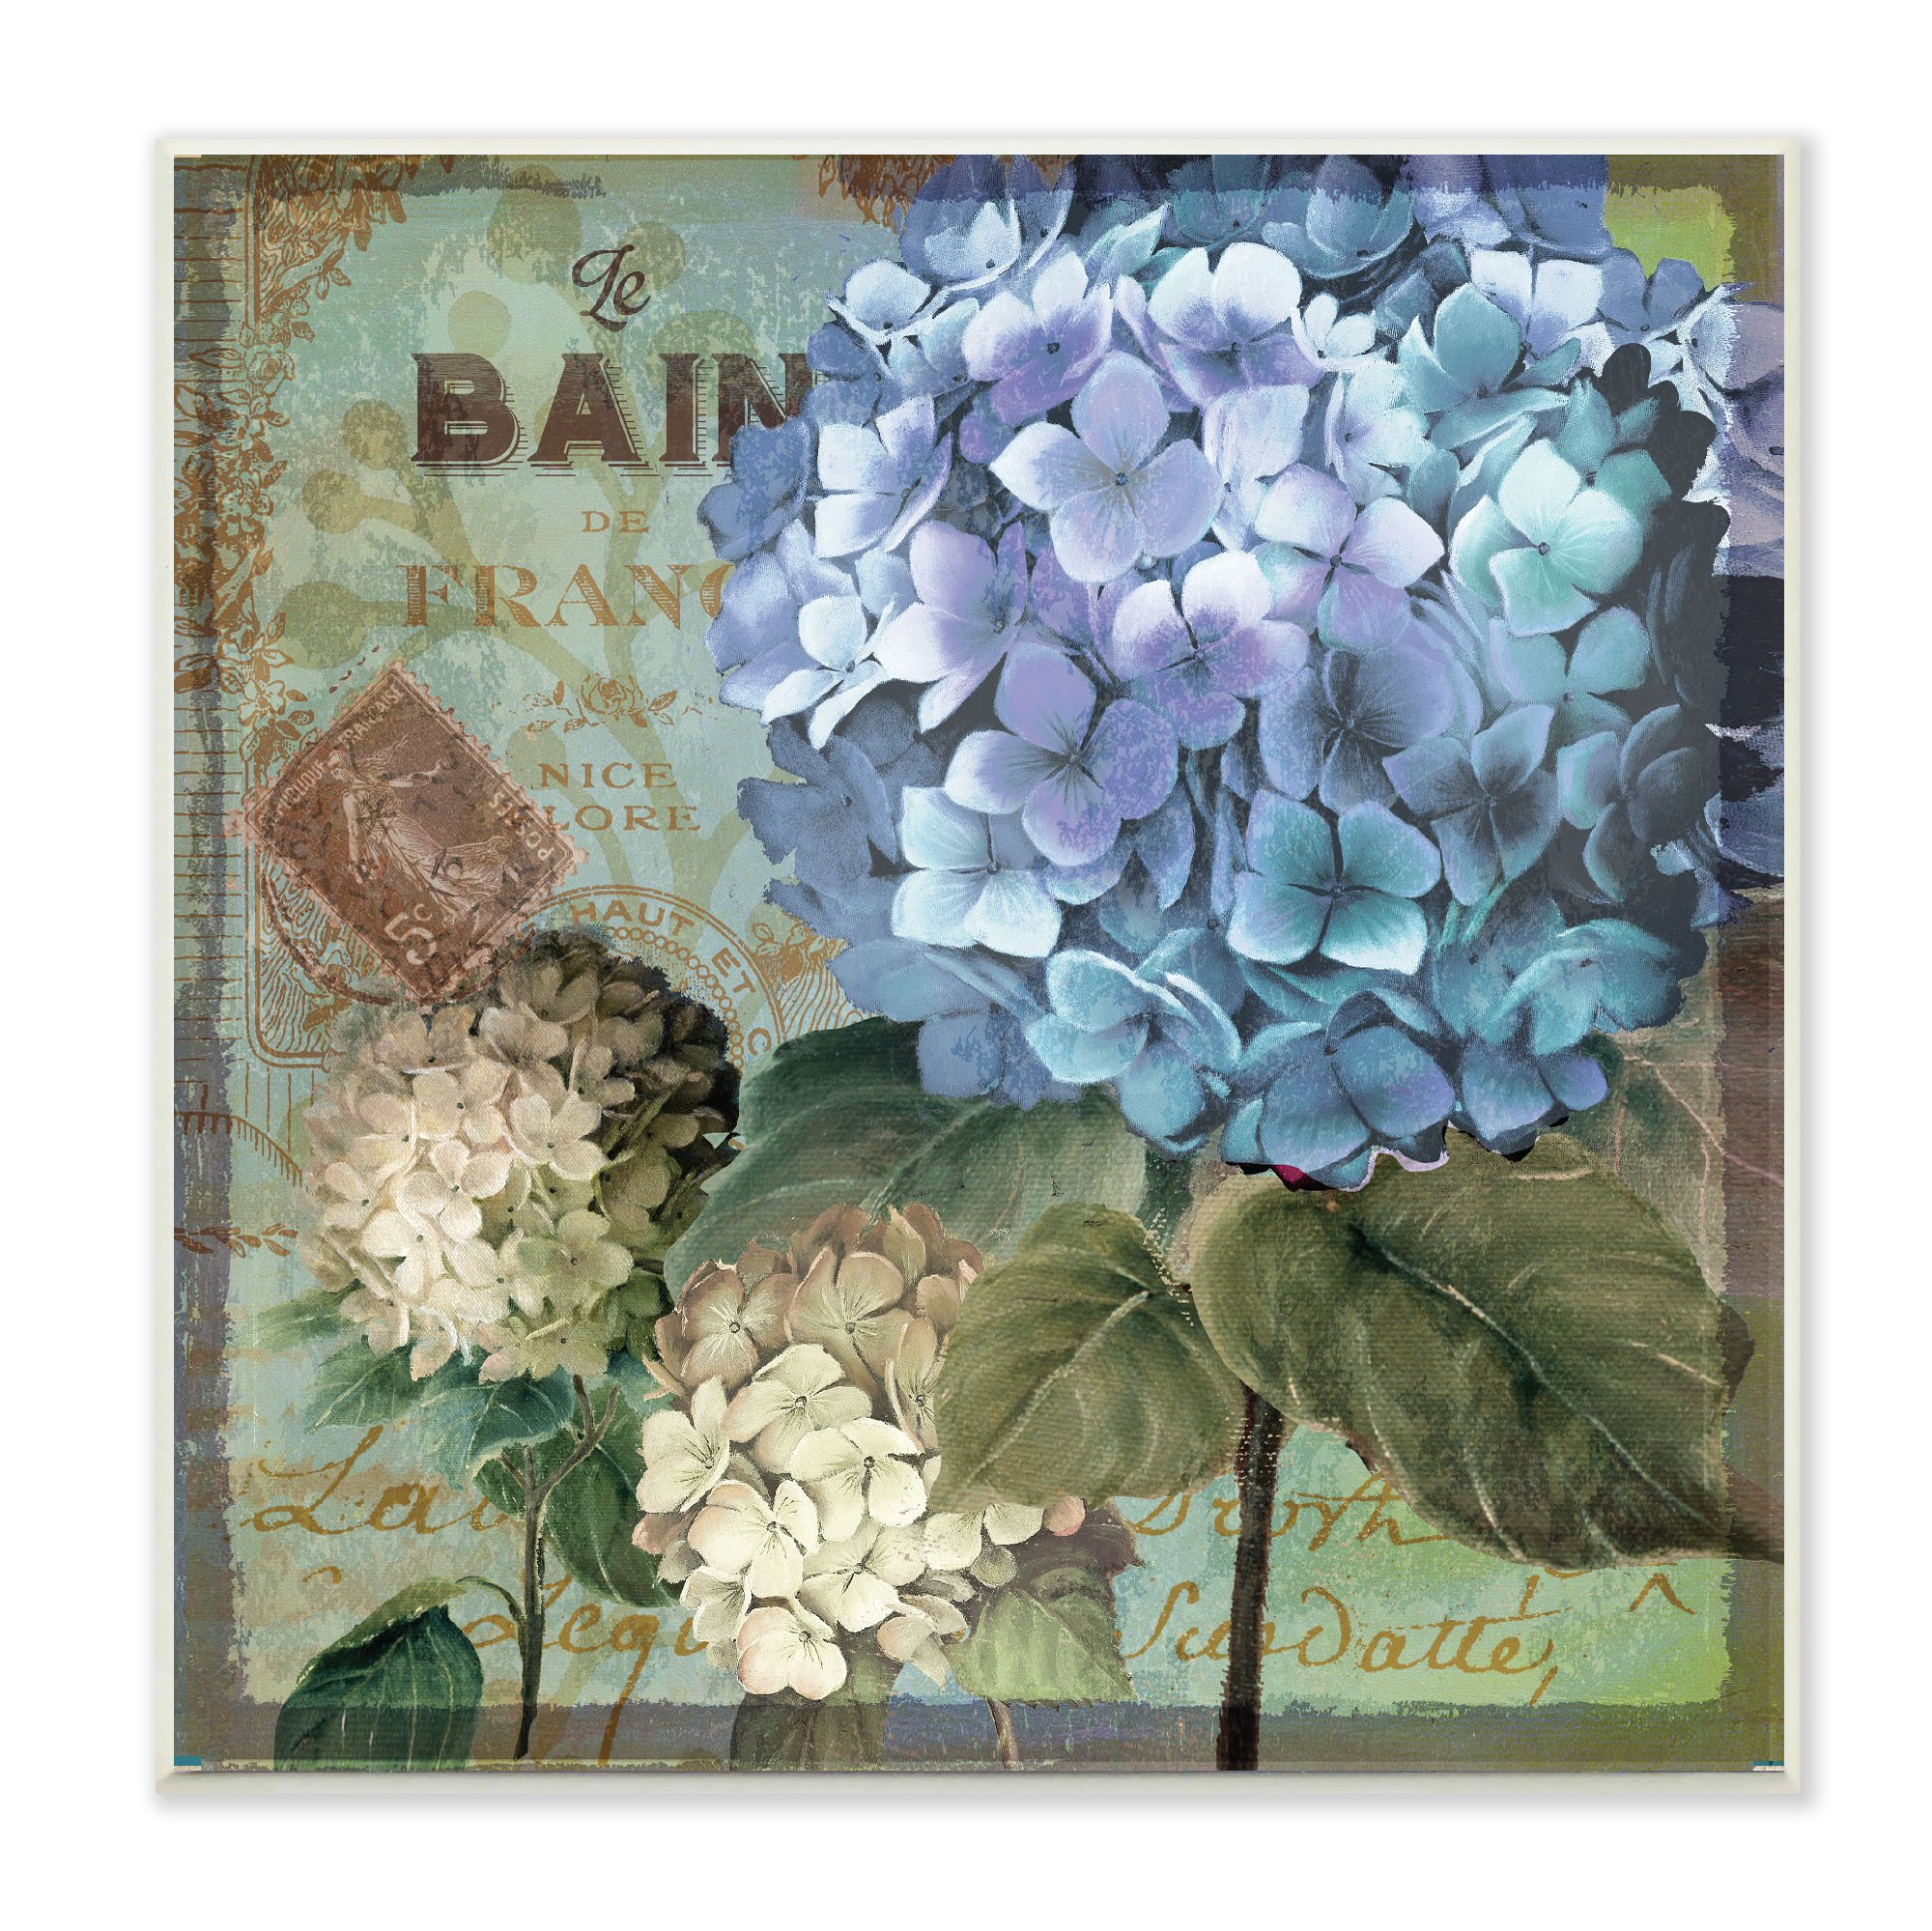 Stupell Home Décor Colorful Hydrangeas with Antique French Backdrop Wall Plaque Art, 12 x 0.5 x 12, Proudly Made in USA